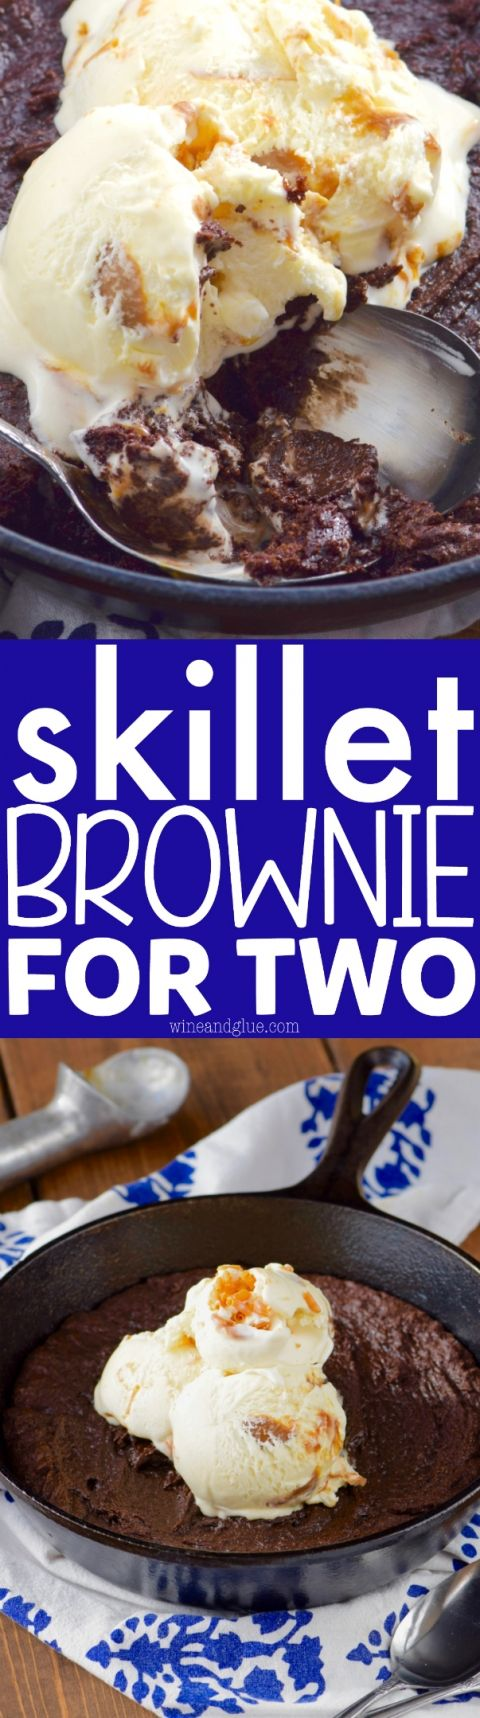 This Skillet Brownie for Two comes together fast in just one bowl and is perfect for a date night or even an after dinner dessert for a family of four!